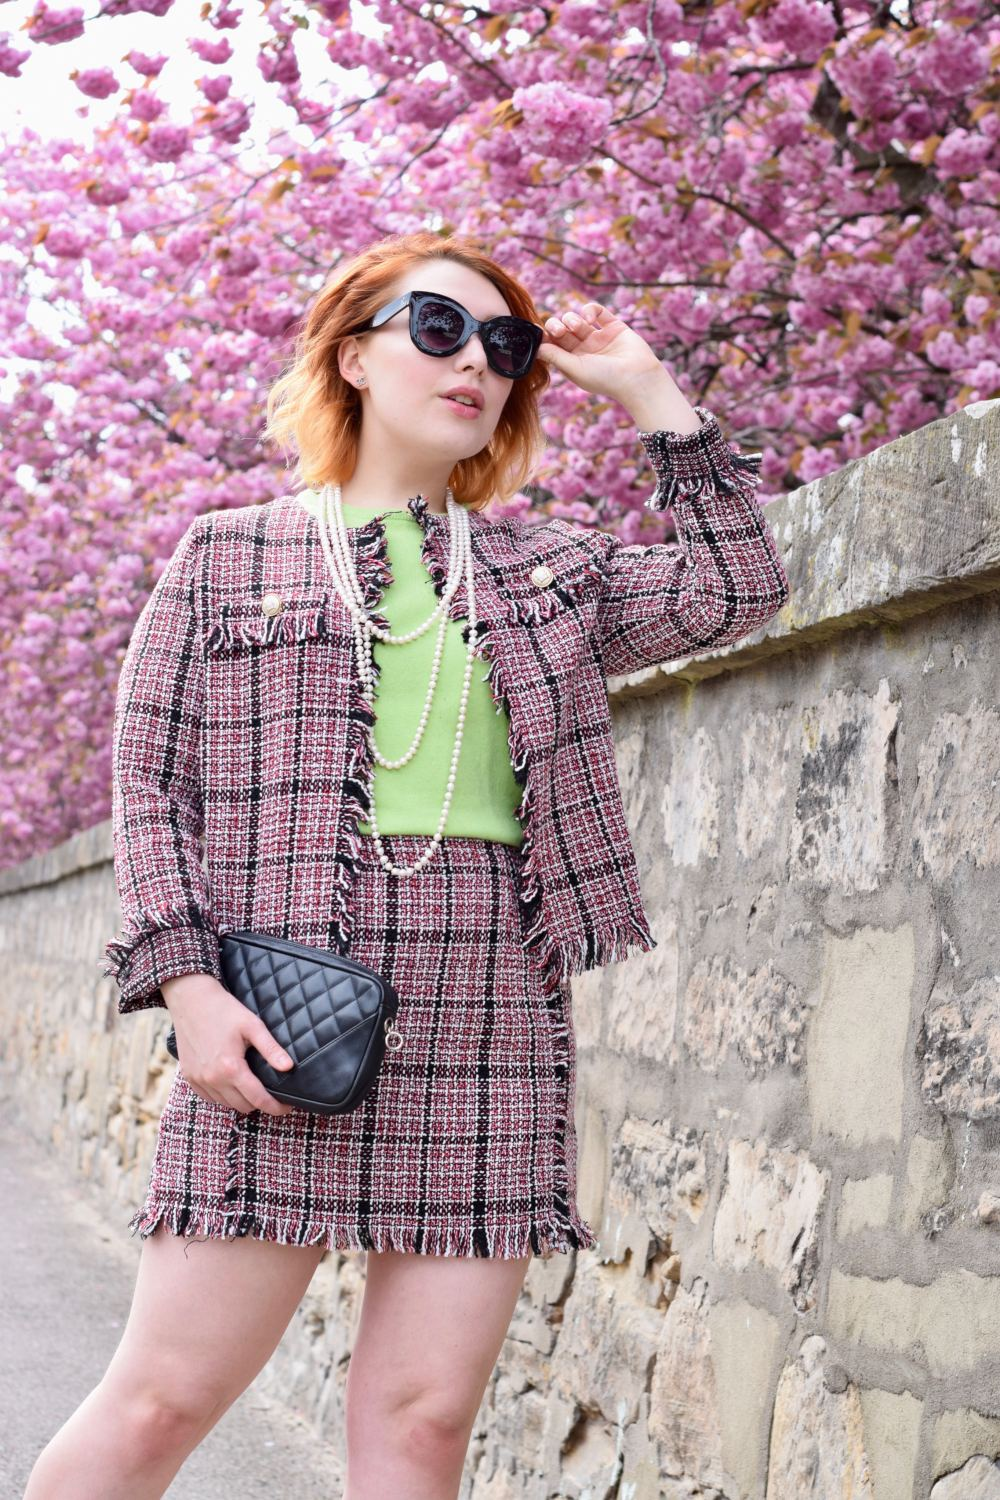 Scottish blogger Styled by Alice wears pink boucle tweed coord, pearls and oversized sunglasses in the style of Chanel